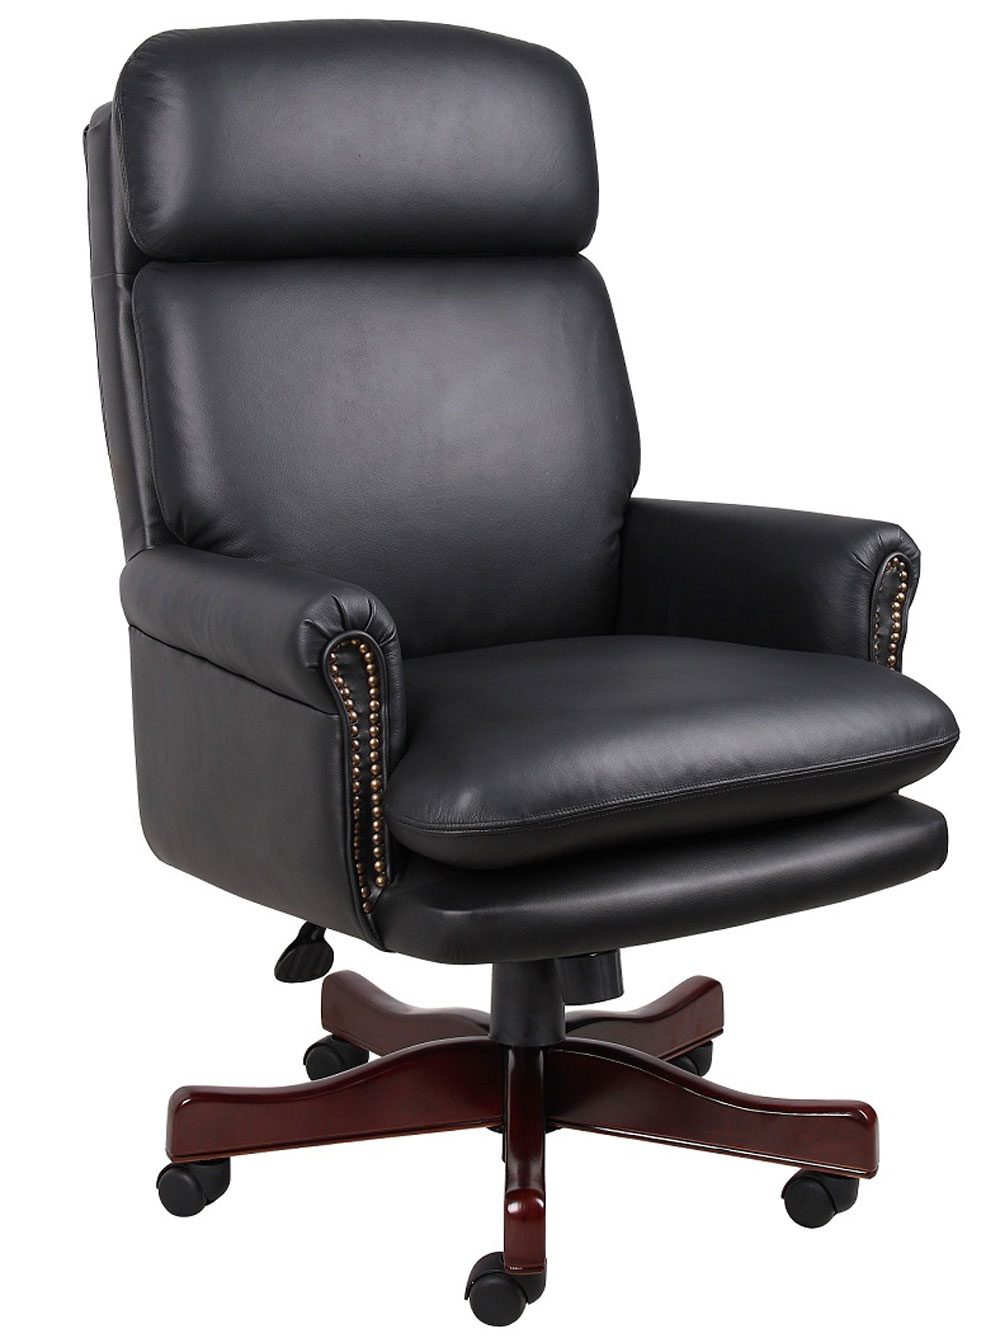 sealy office chair boss top executive office chairs with traditional pillow